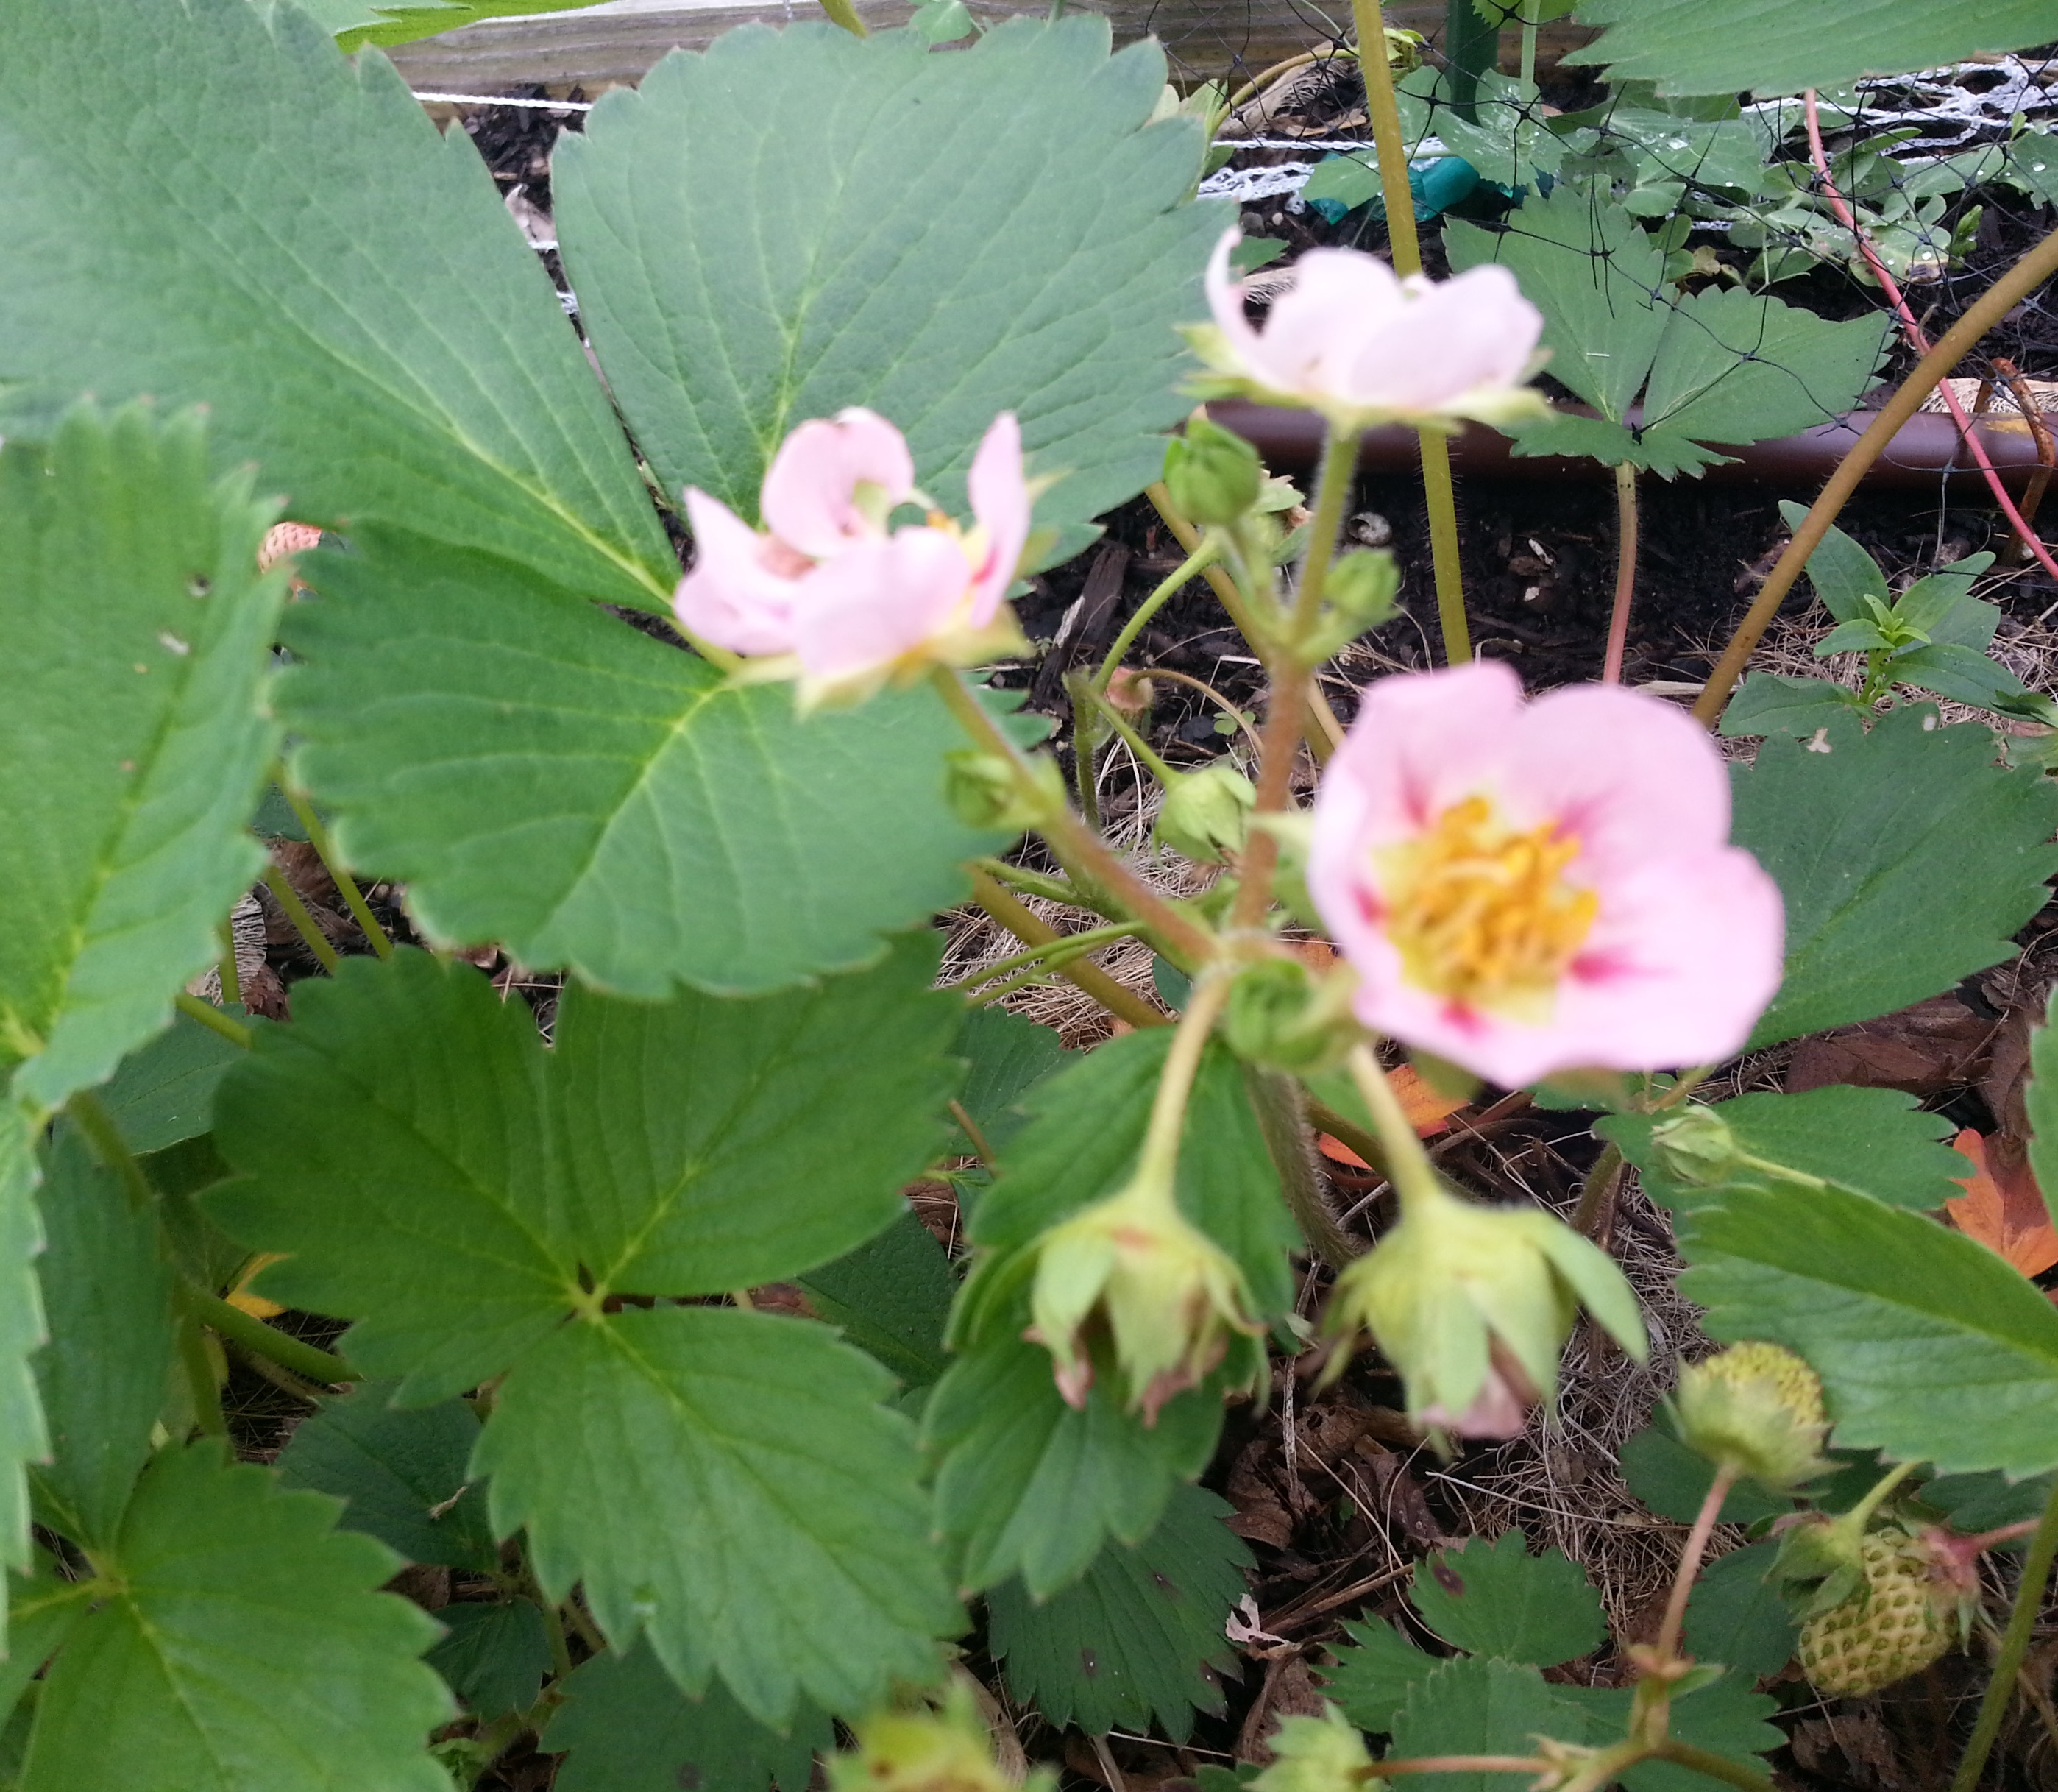 Plant and grow strawberries crazy for gardening lovely pink strawberry flowers mightylinksfo